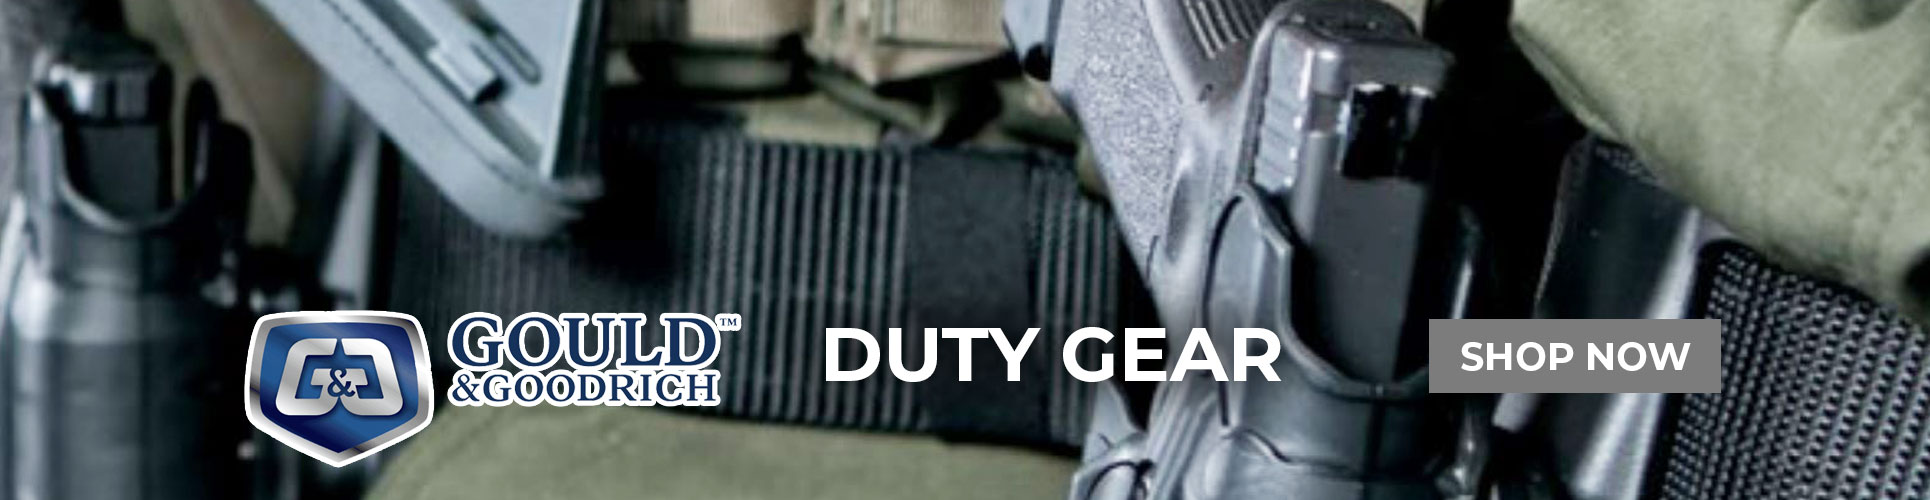 shop-gould-and-goodrich-duty-gear-updated.jpg